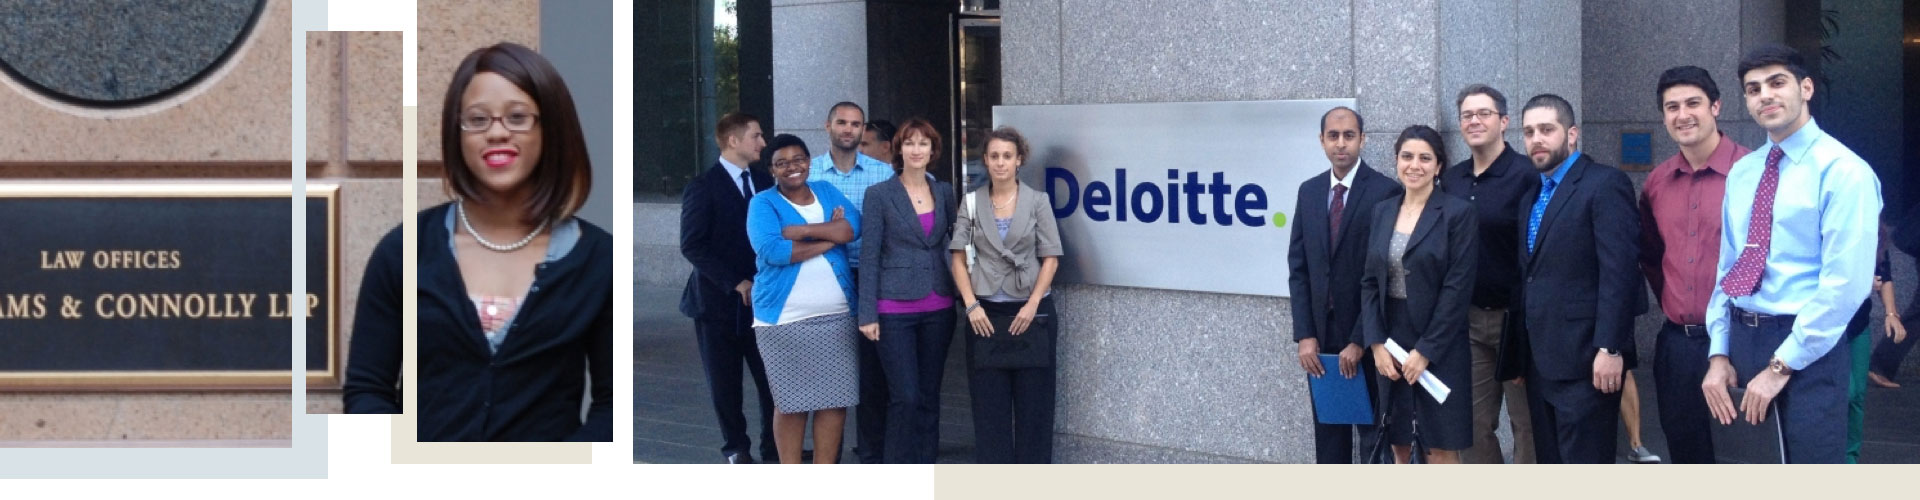 Students in front of law office and Deloitte office